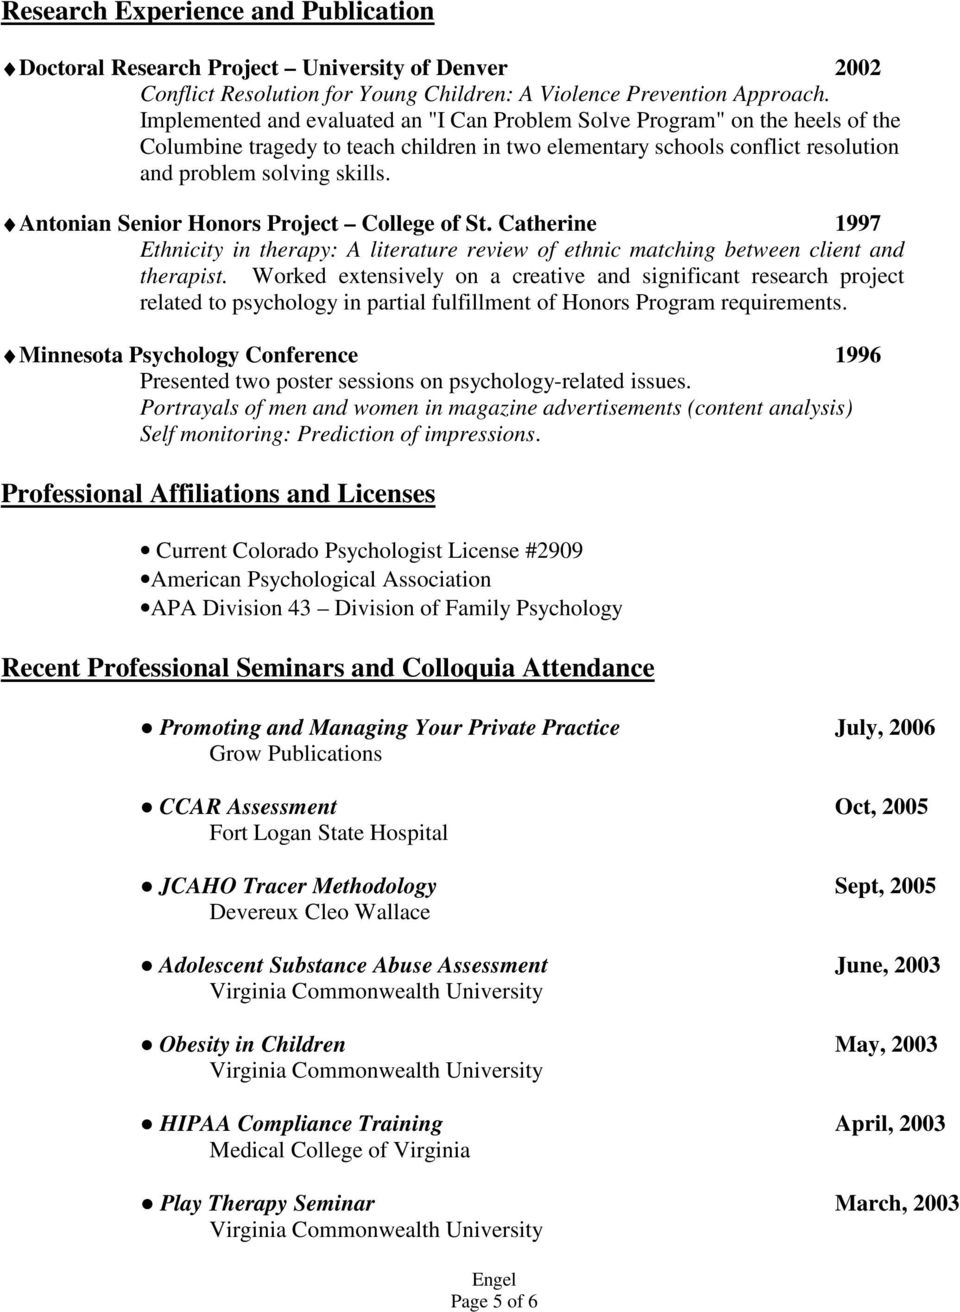 Antonian Senior Honors Project College of St. Catherine 1997 Ethnicity in therapy: A literature review of ethnic matching between client and therapist.